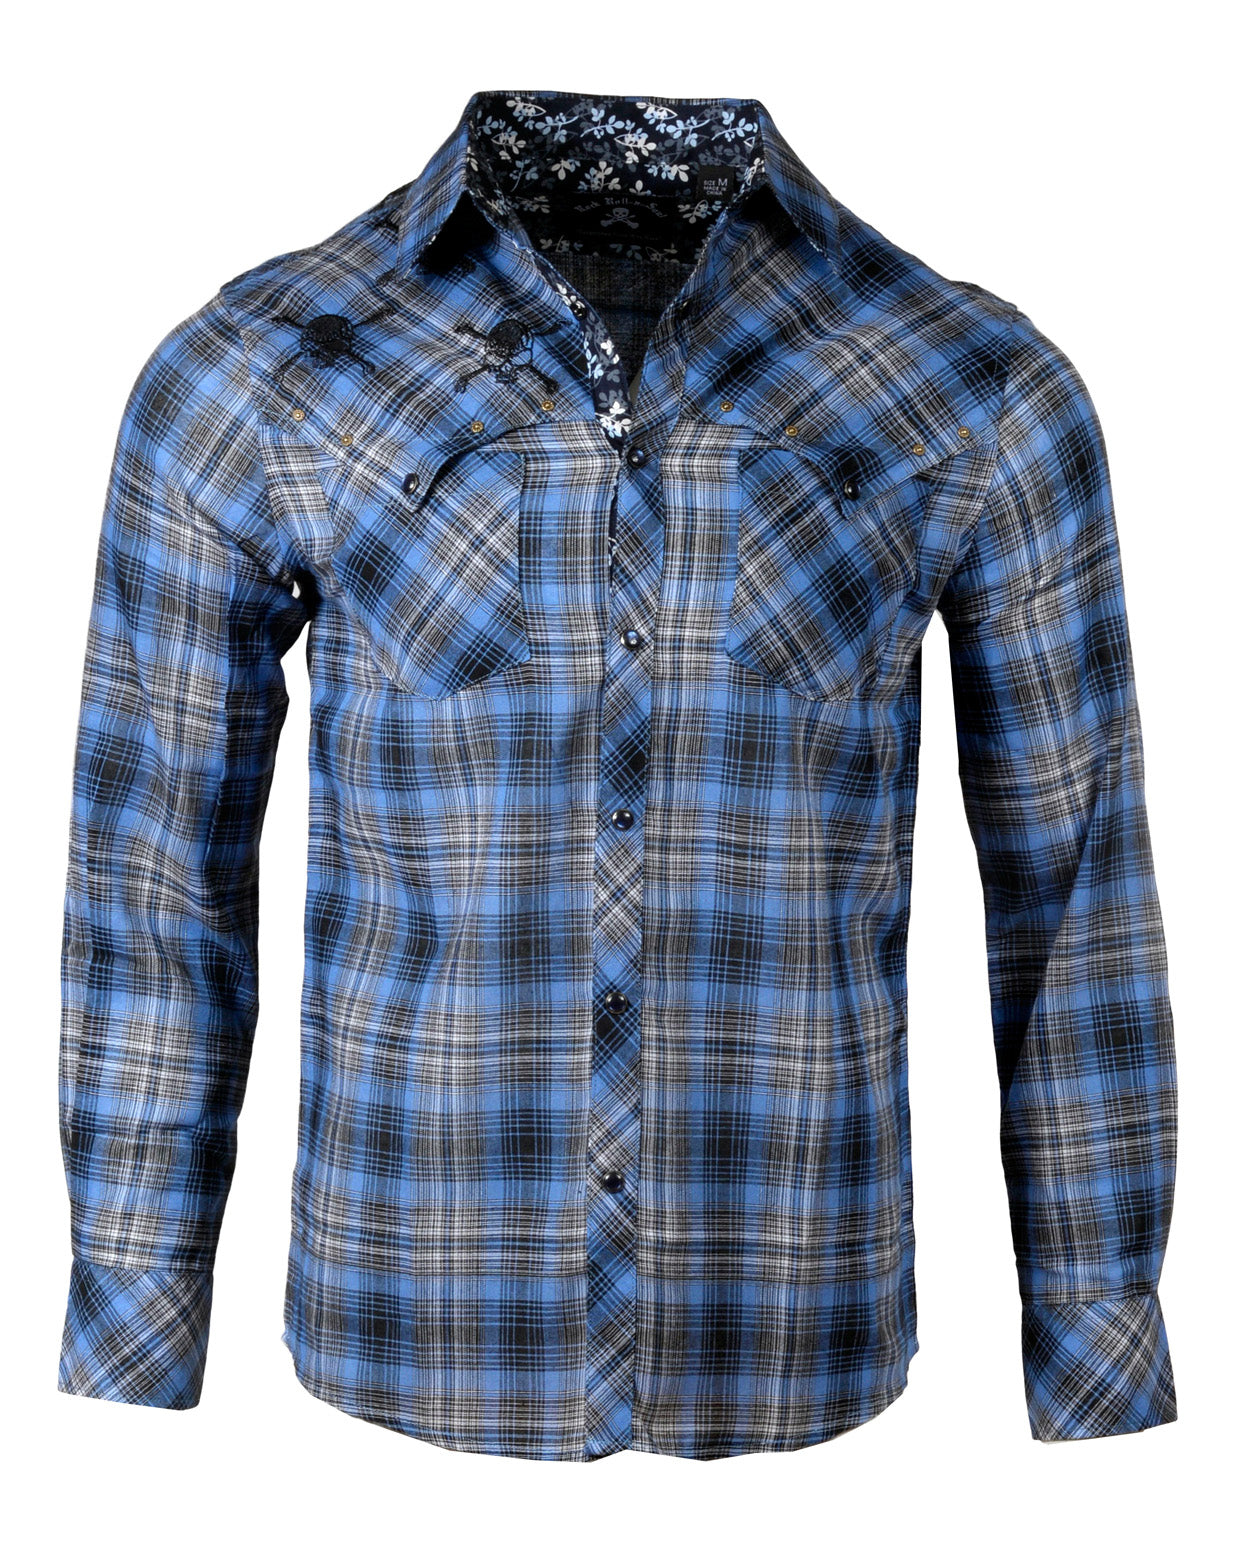 Men's Casual Fashion Button Up Shirt - Blue on Black by Rock Roll n Soul